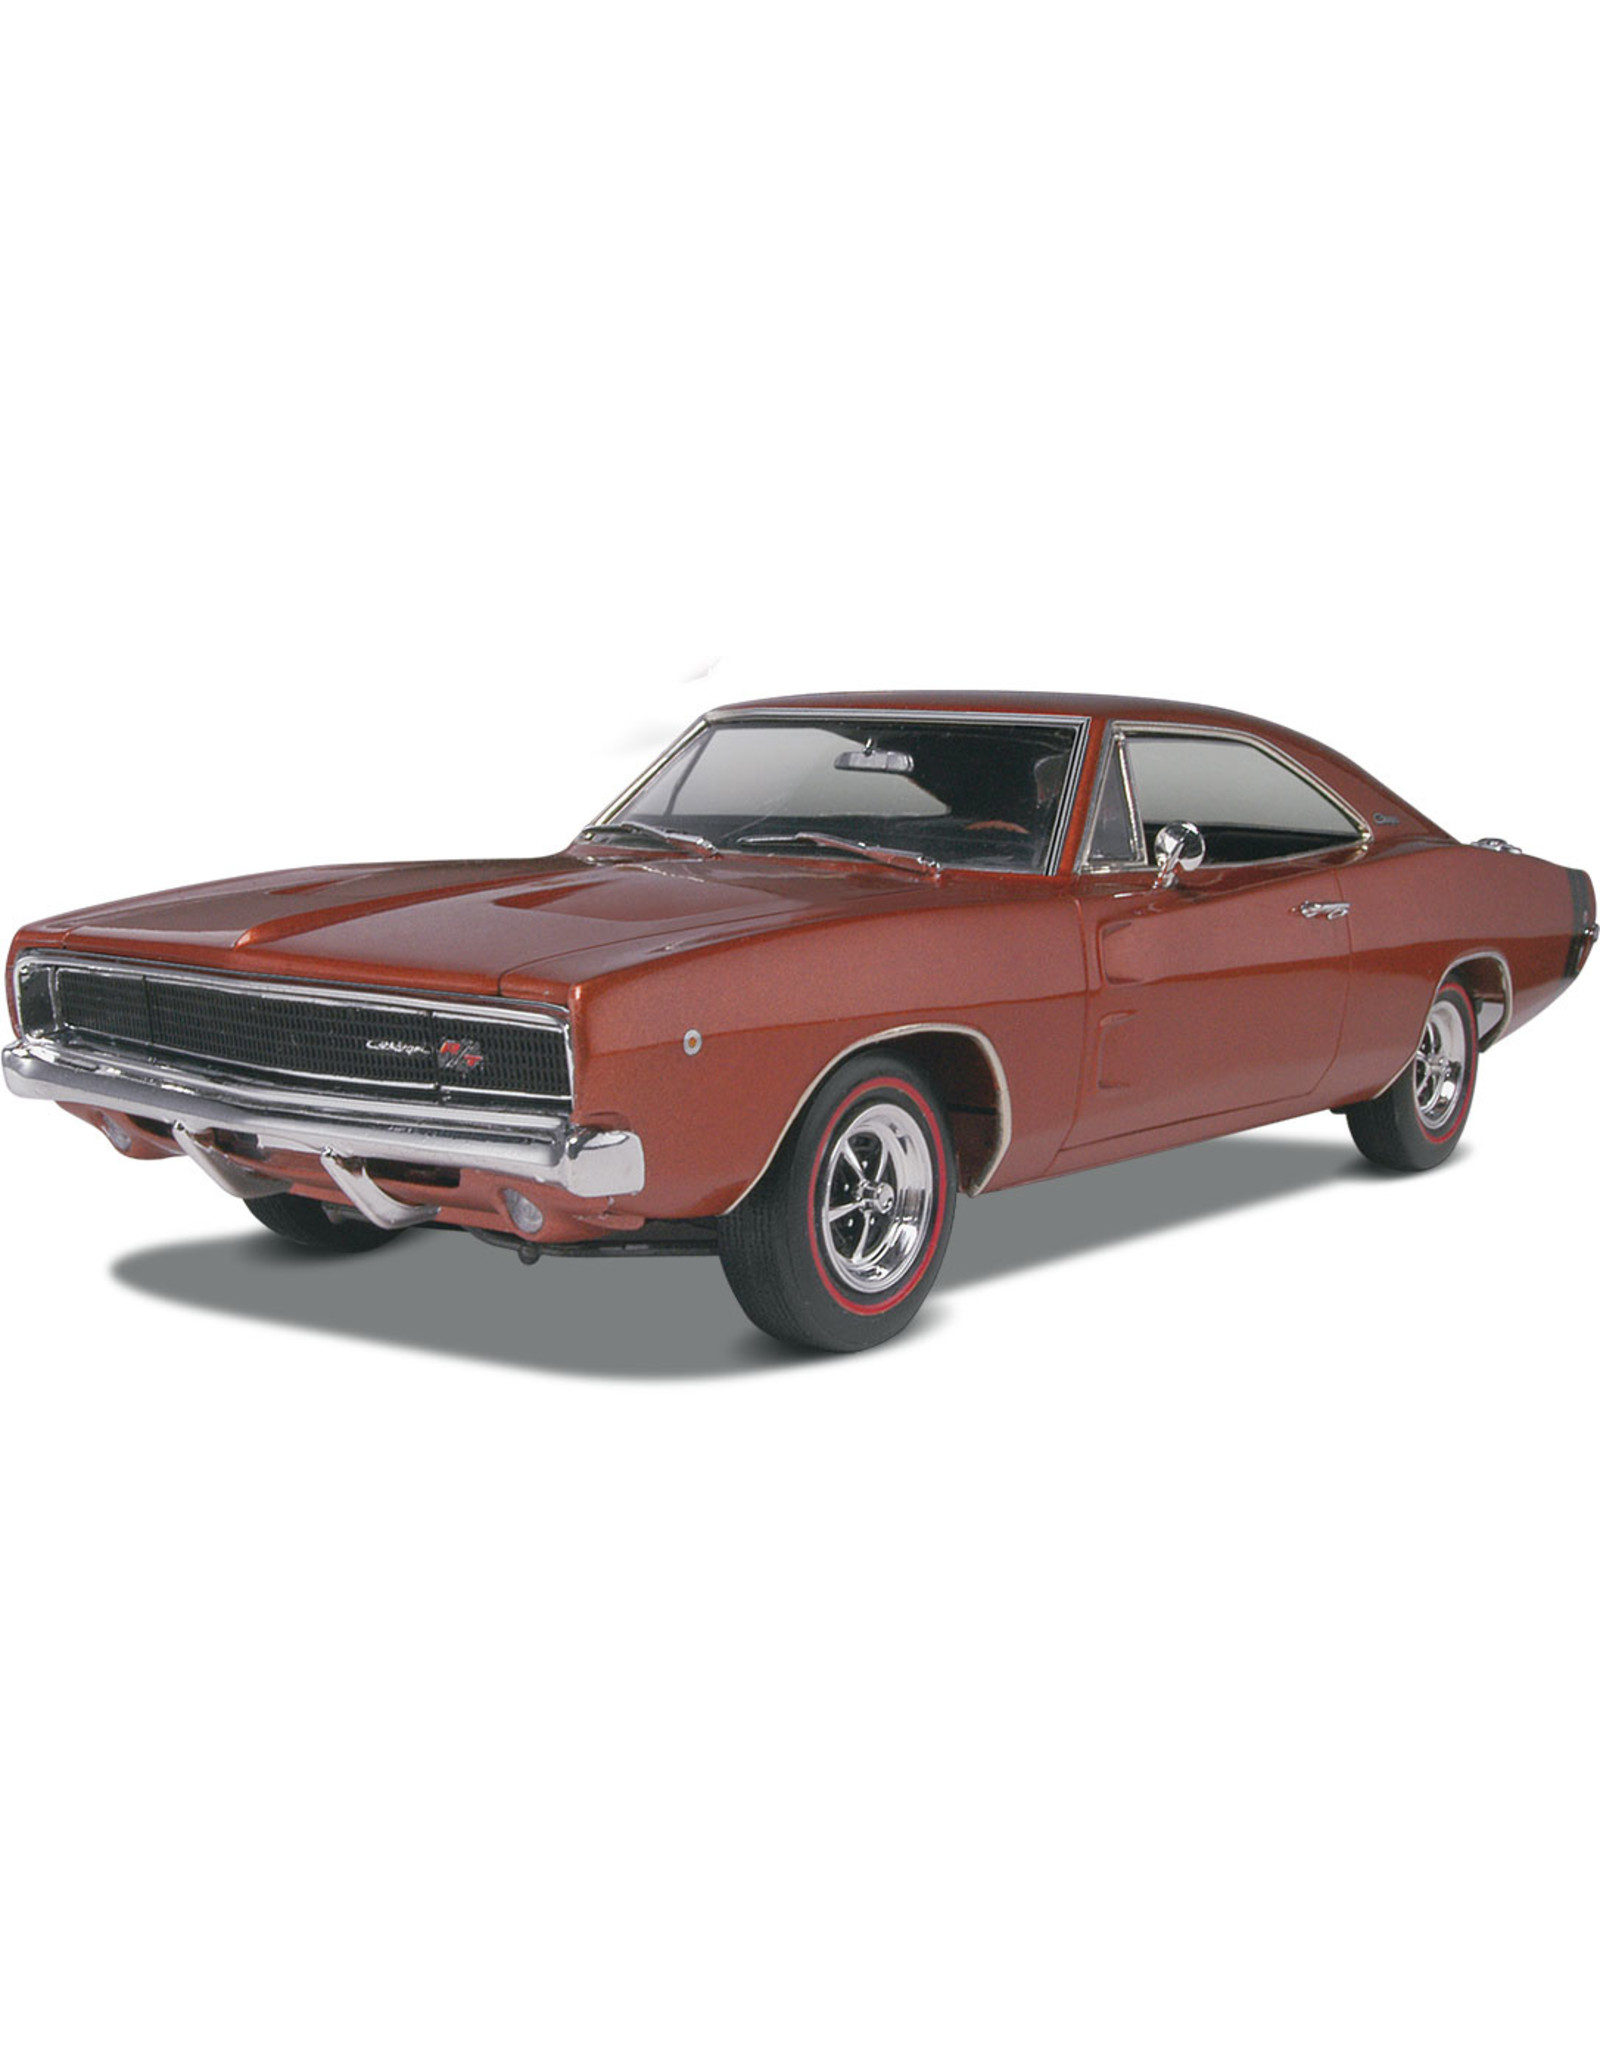 Revell 4202 - '68 Dodge Charger 2n1 1/25